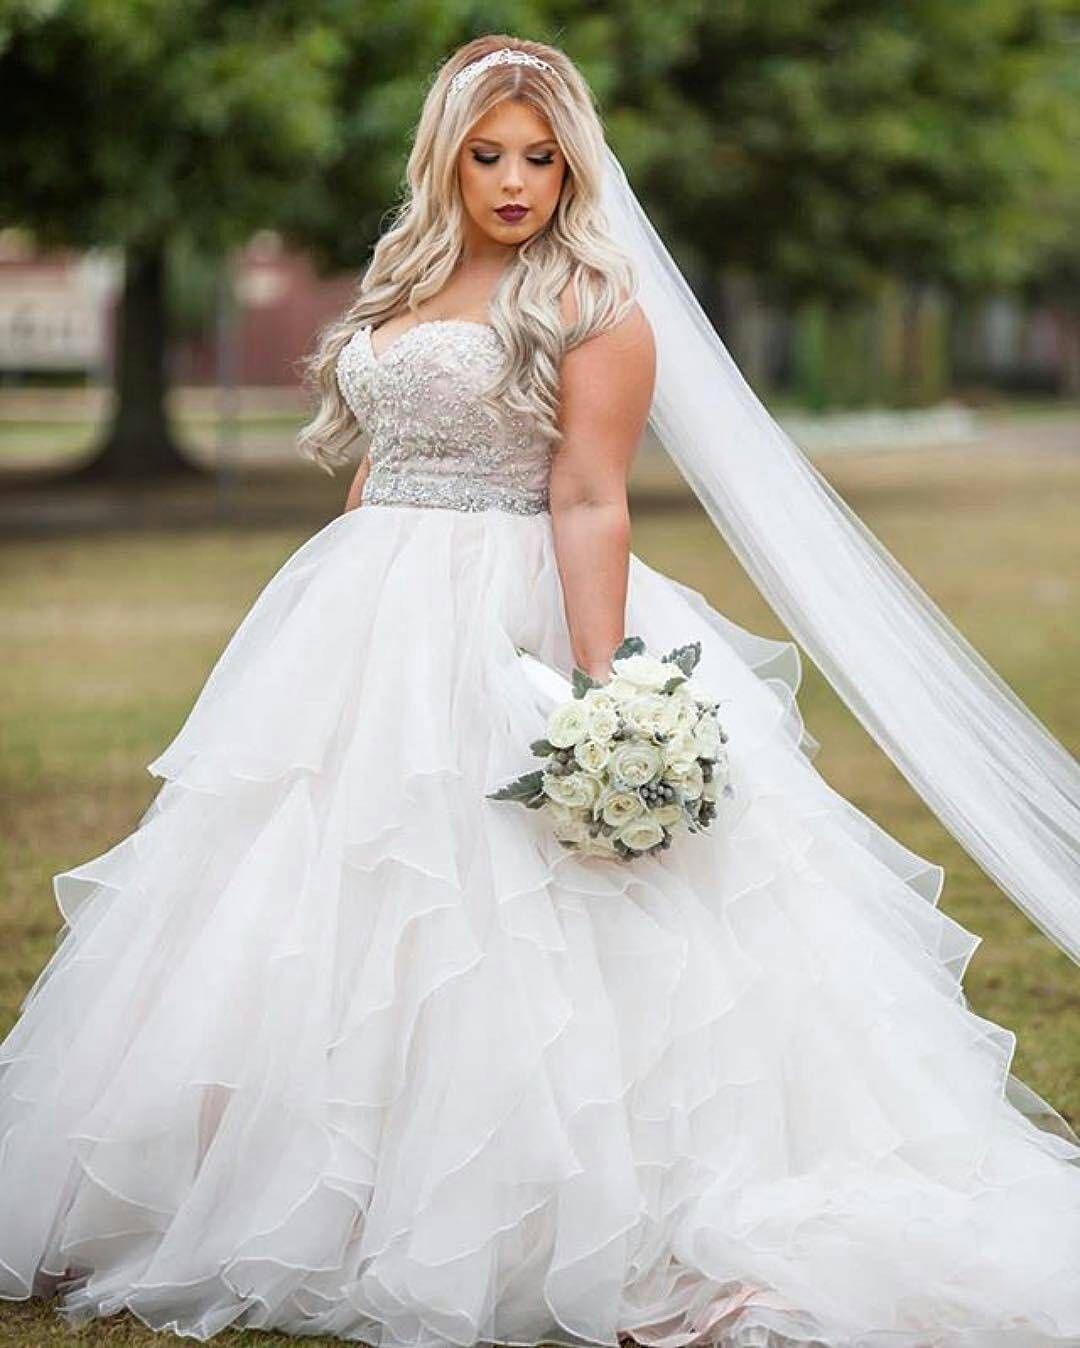 Can Be Easily Recreated For Brides With Any Design Changes We Are USA Dress Designers Who Specialize In Affordable Custom Plus Size Weddingdresses